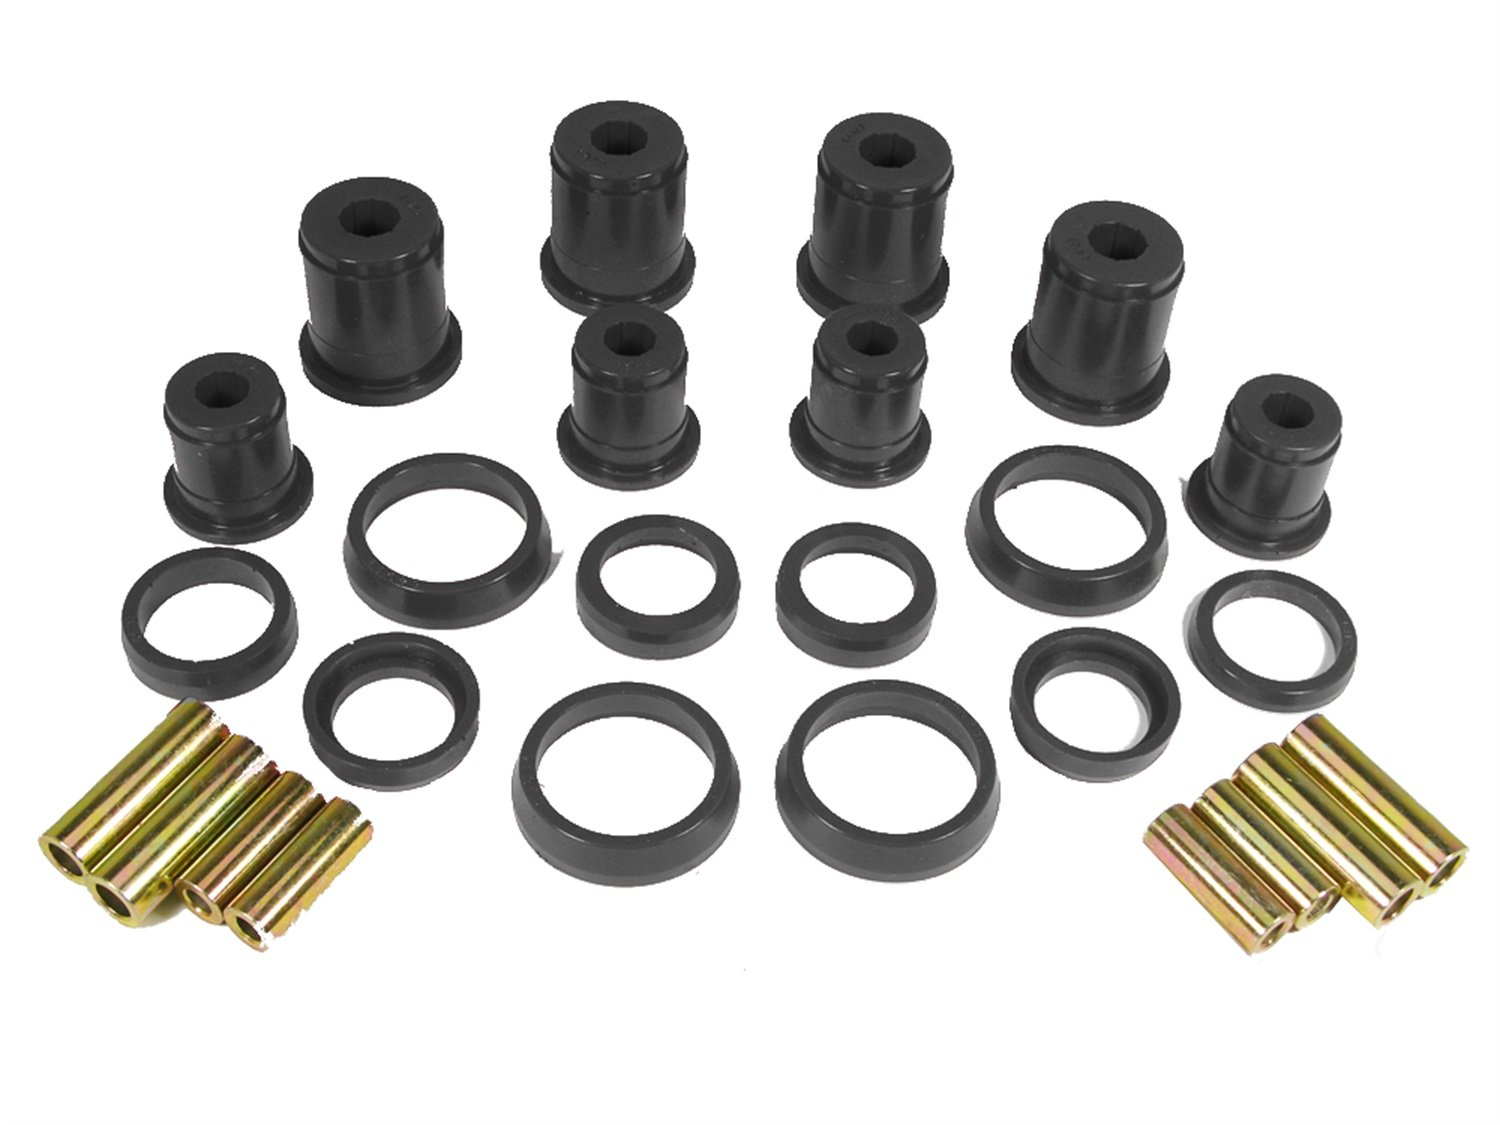 Prothane 1-204-BL Black Control Arm Bushing Kit for Jeep TJ